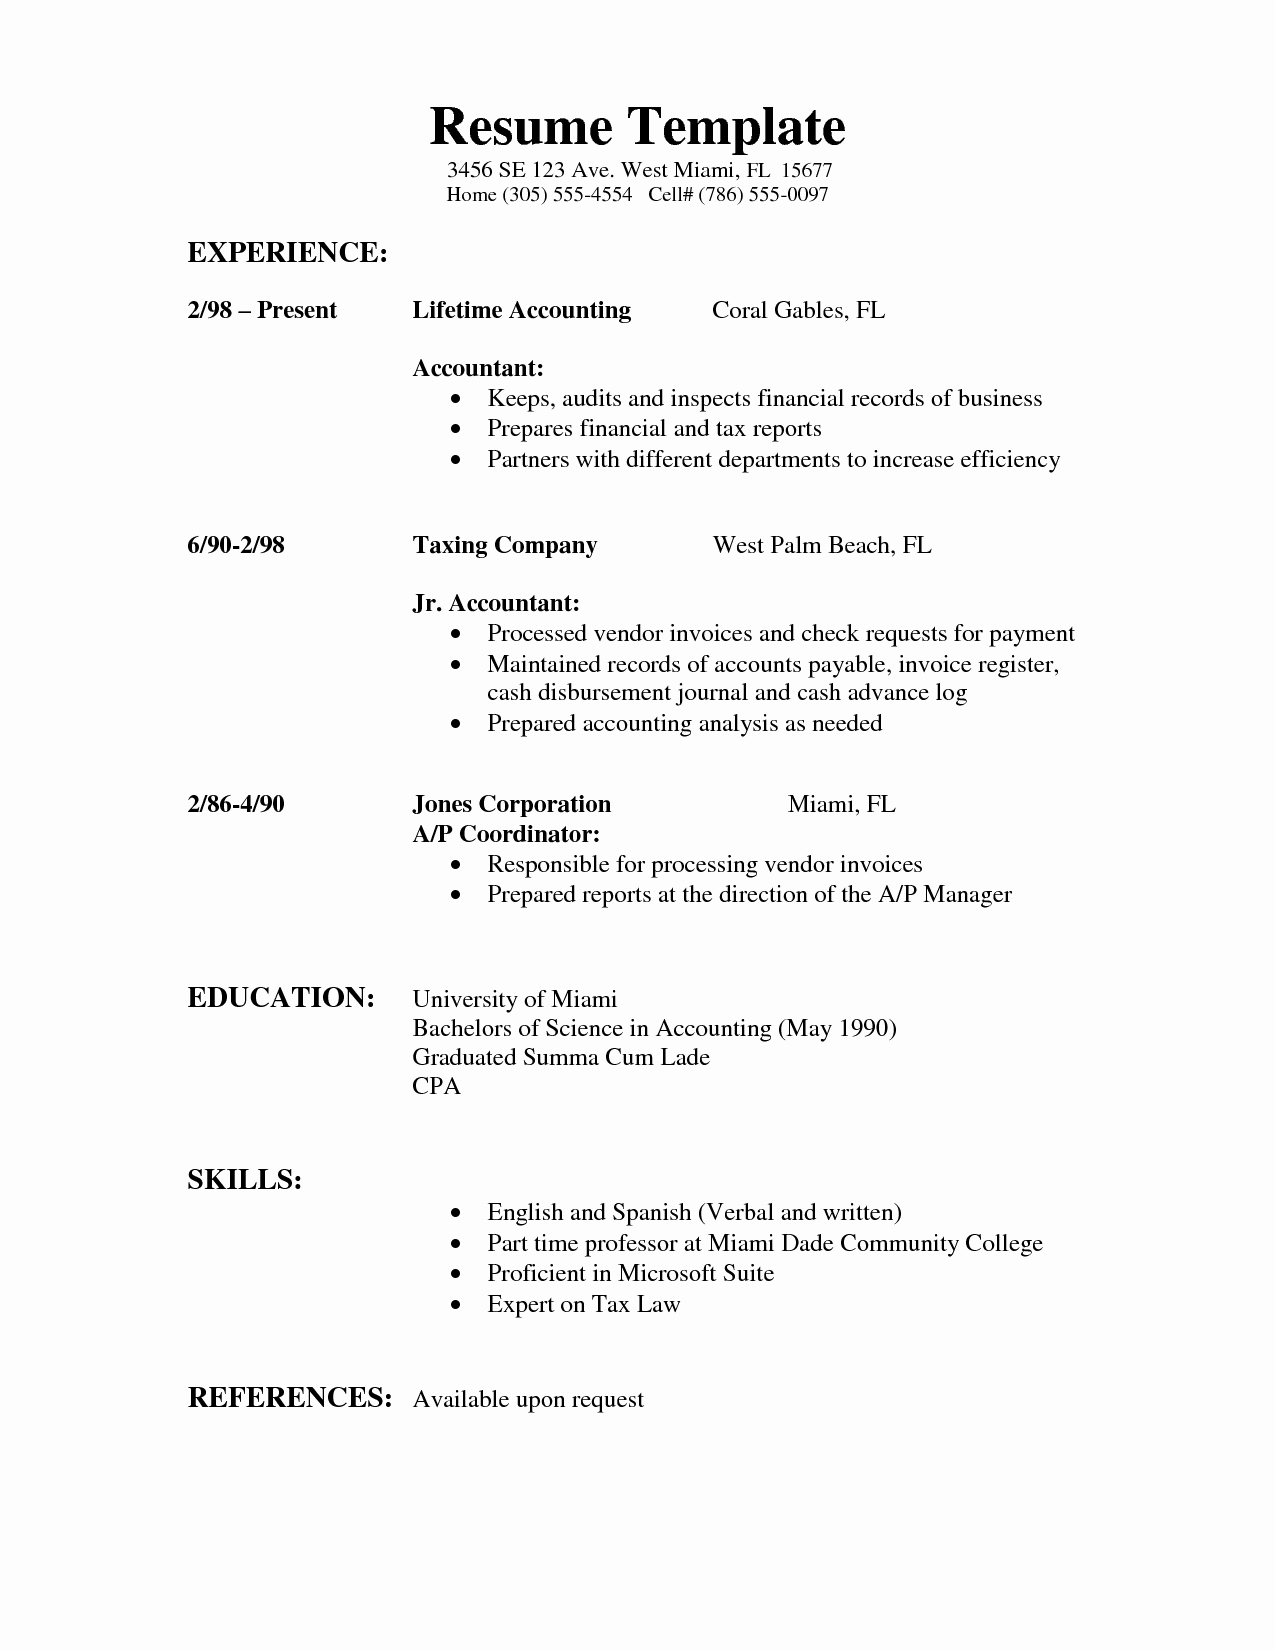 Example Of A Simple Resume Inspirational My Perfect Resume Templates